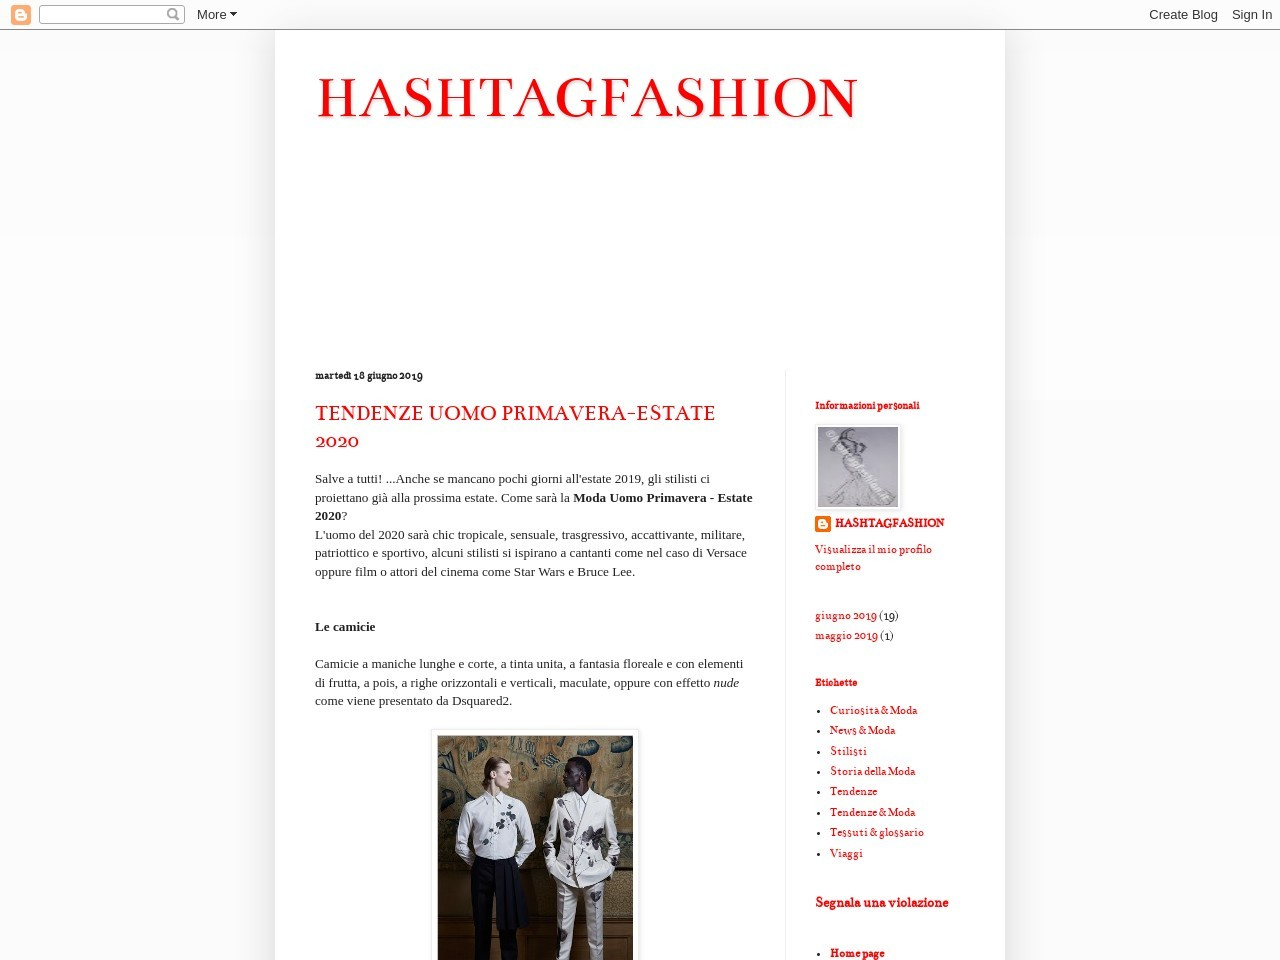 hashtagfashion